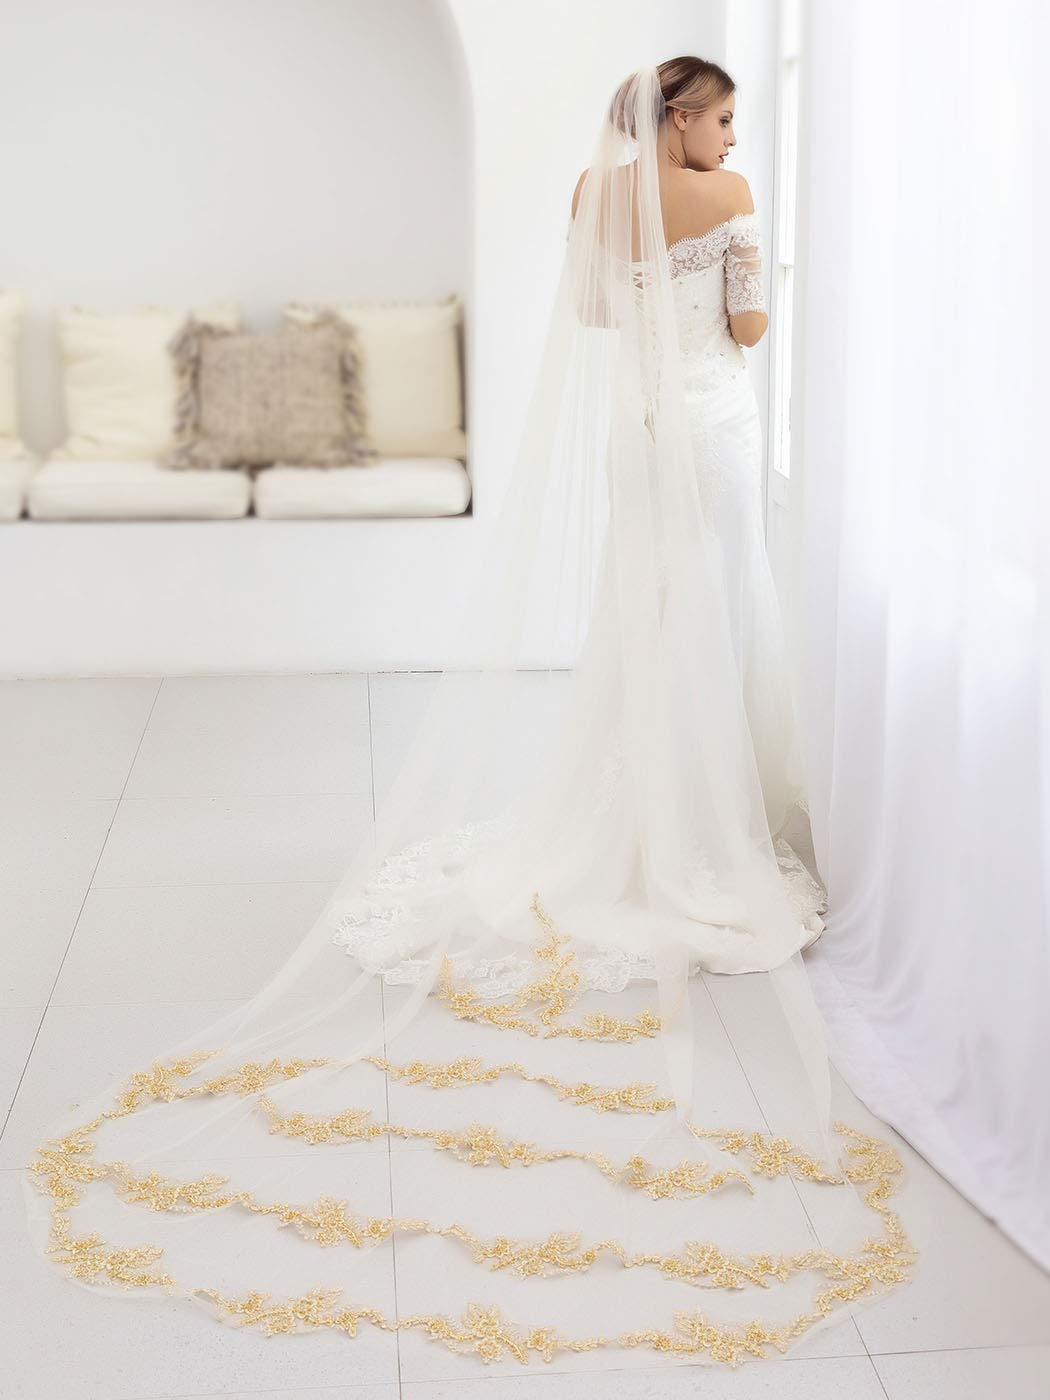 Aukmla Cathedral Veil Wedding Bridal Veils Beautiful Long Veil with Lace and Metal Comb at the Edge (Champagne)